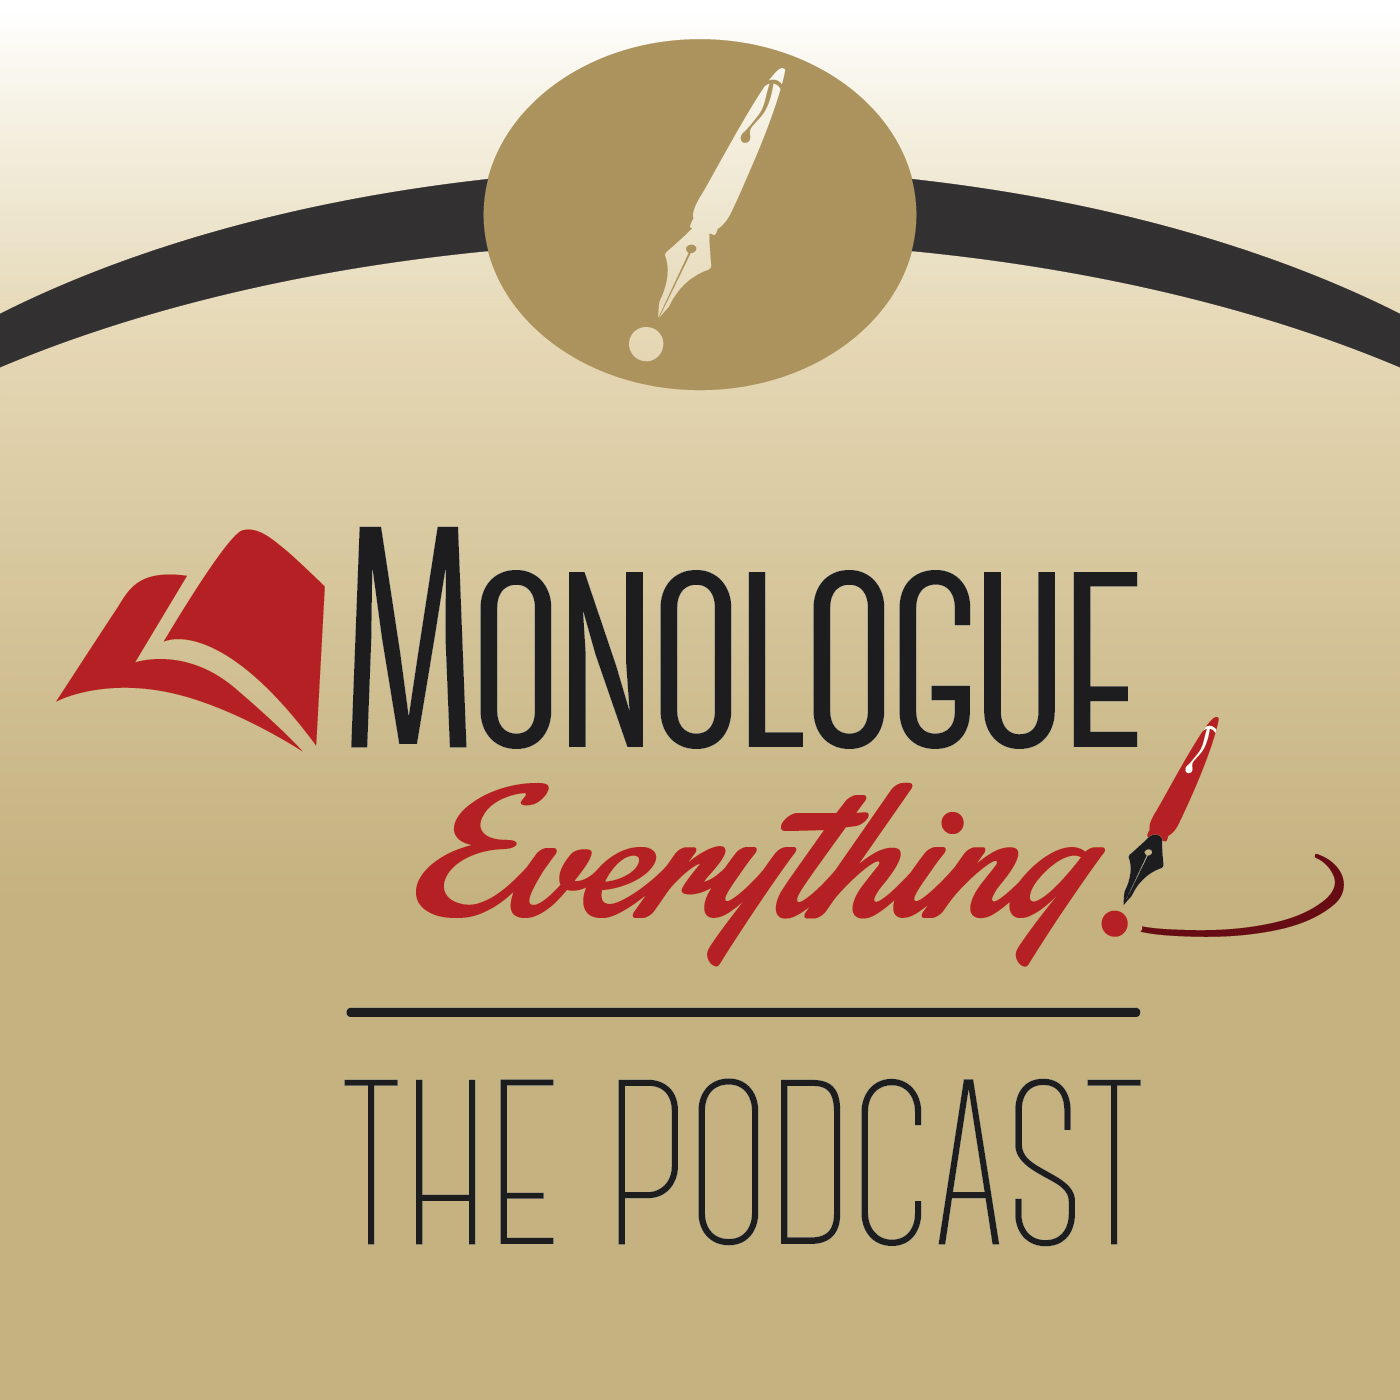 Monologue-Everything-The-Podcast-1400-x-1400